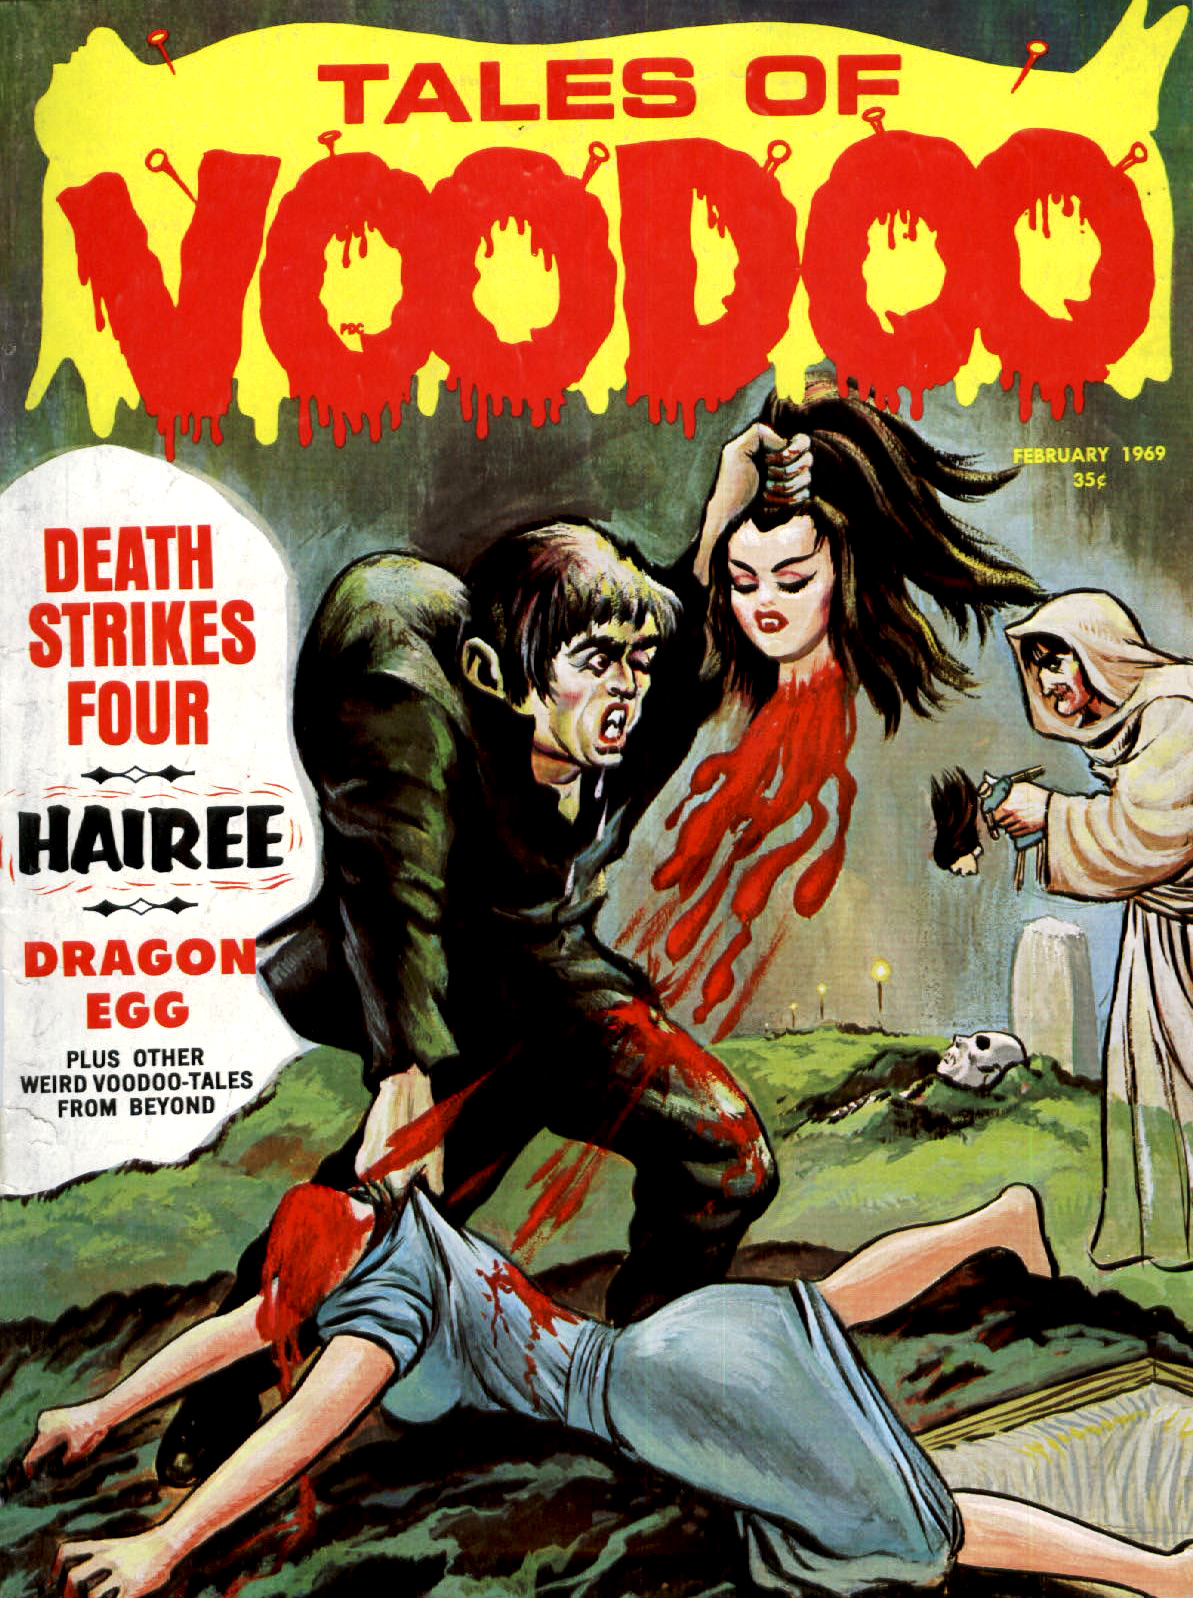 Tales of Voodoo Vol. 2 #1 (Eerie Publications 1969